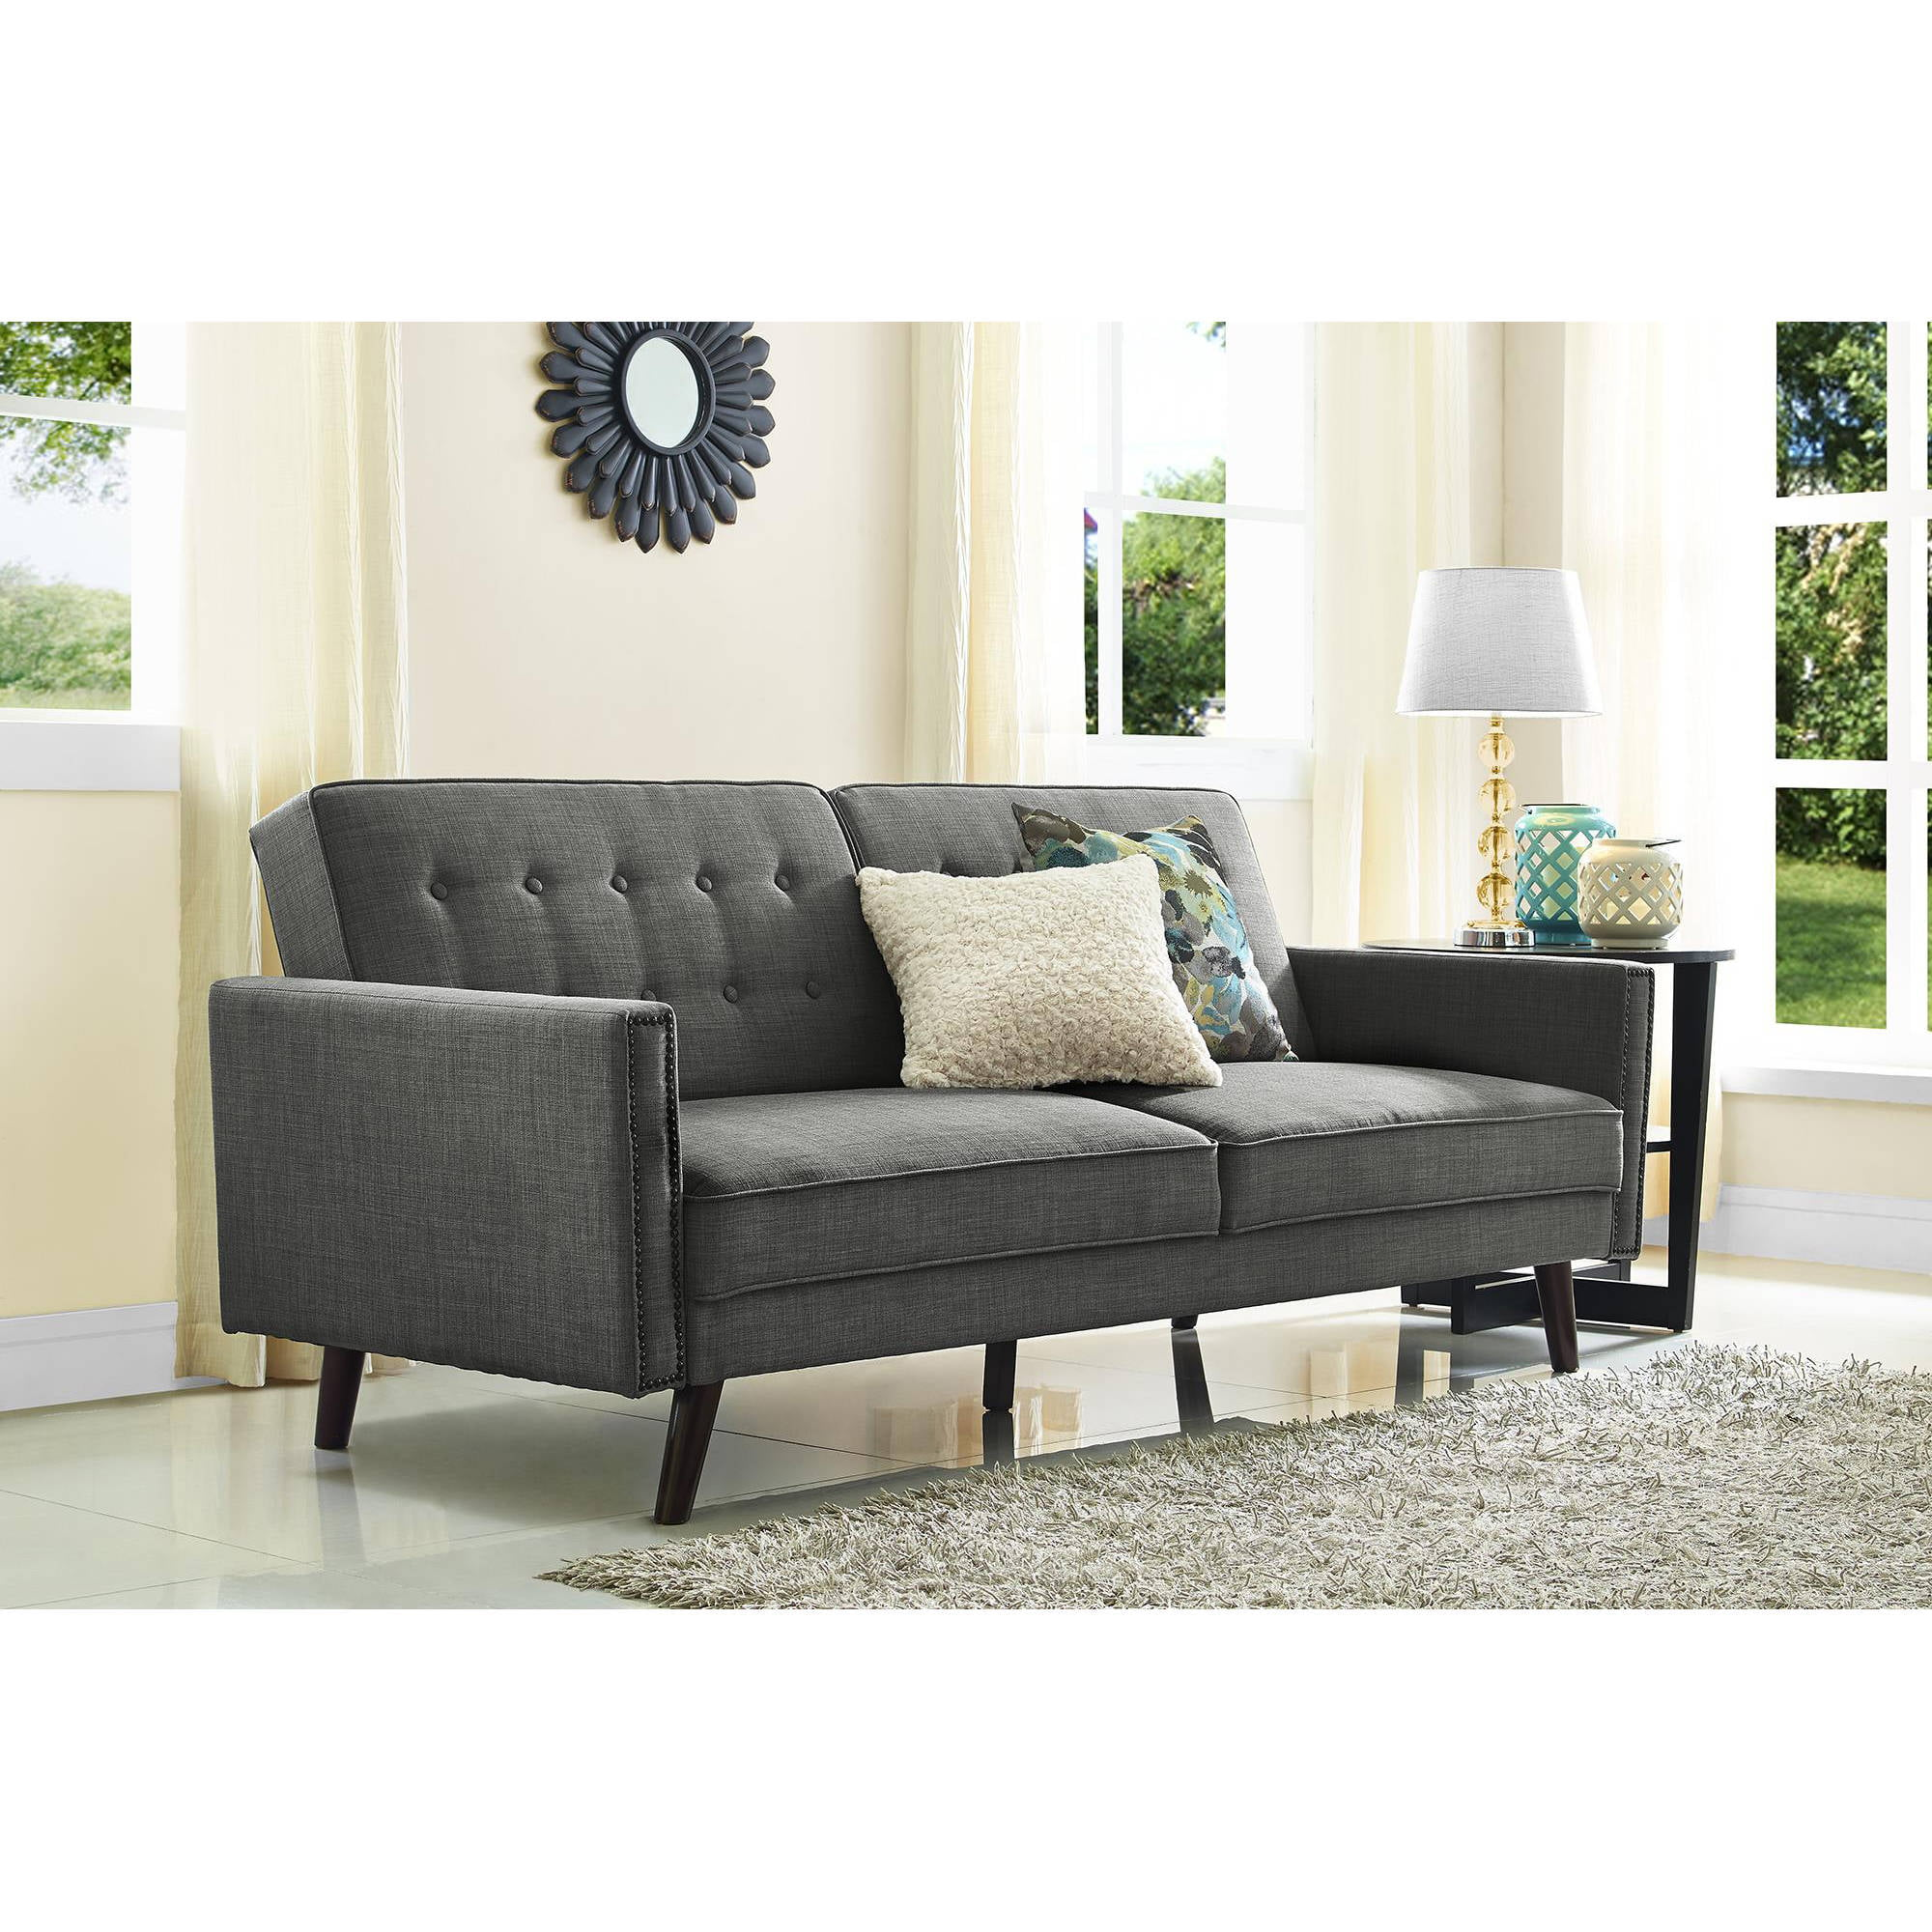 Better Homes And Gardens Rowan Linen Futon, Grey   Walmart.com